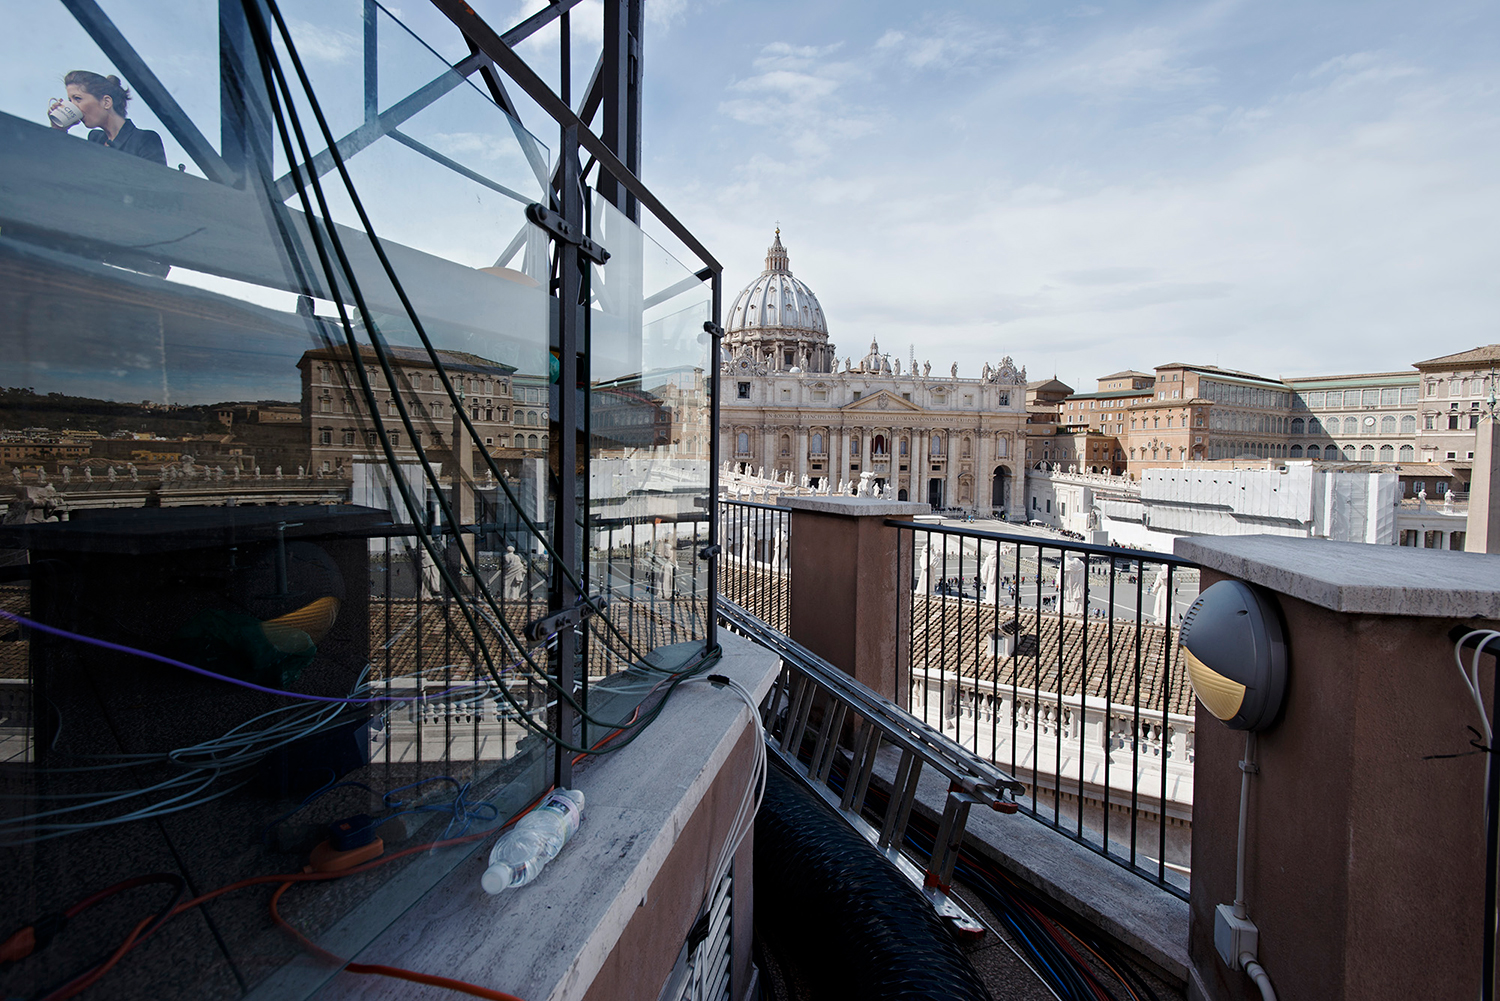 CBS, TV from United States, Location on a roof top on view of St Peter's Square and Basilica.